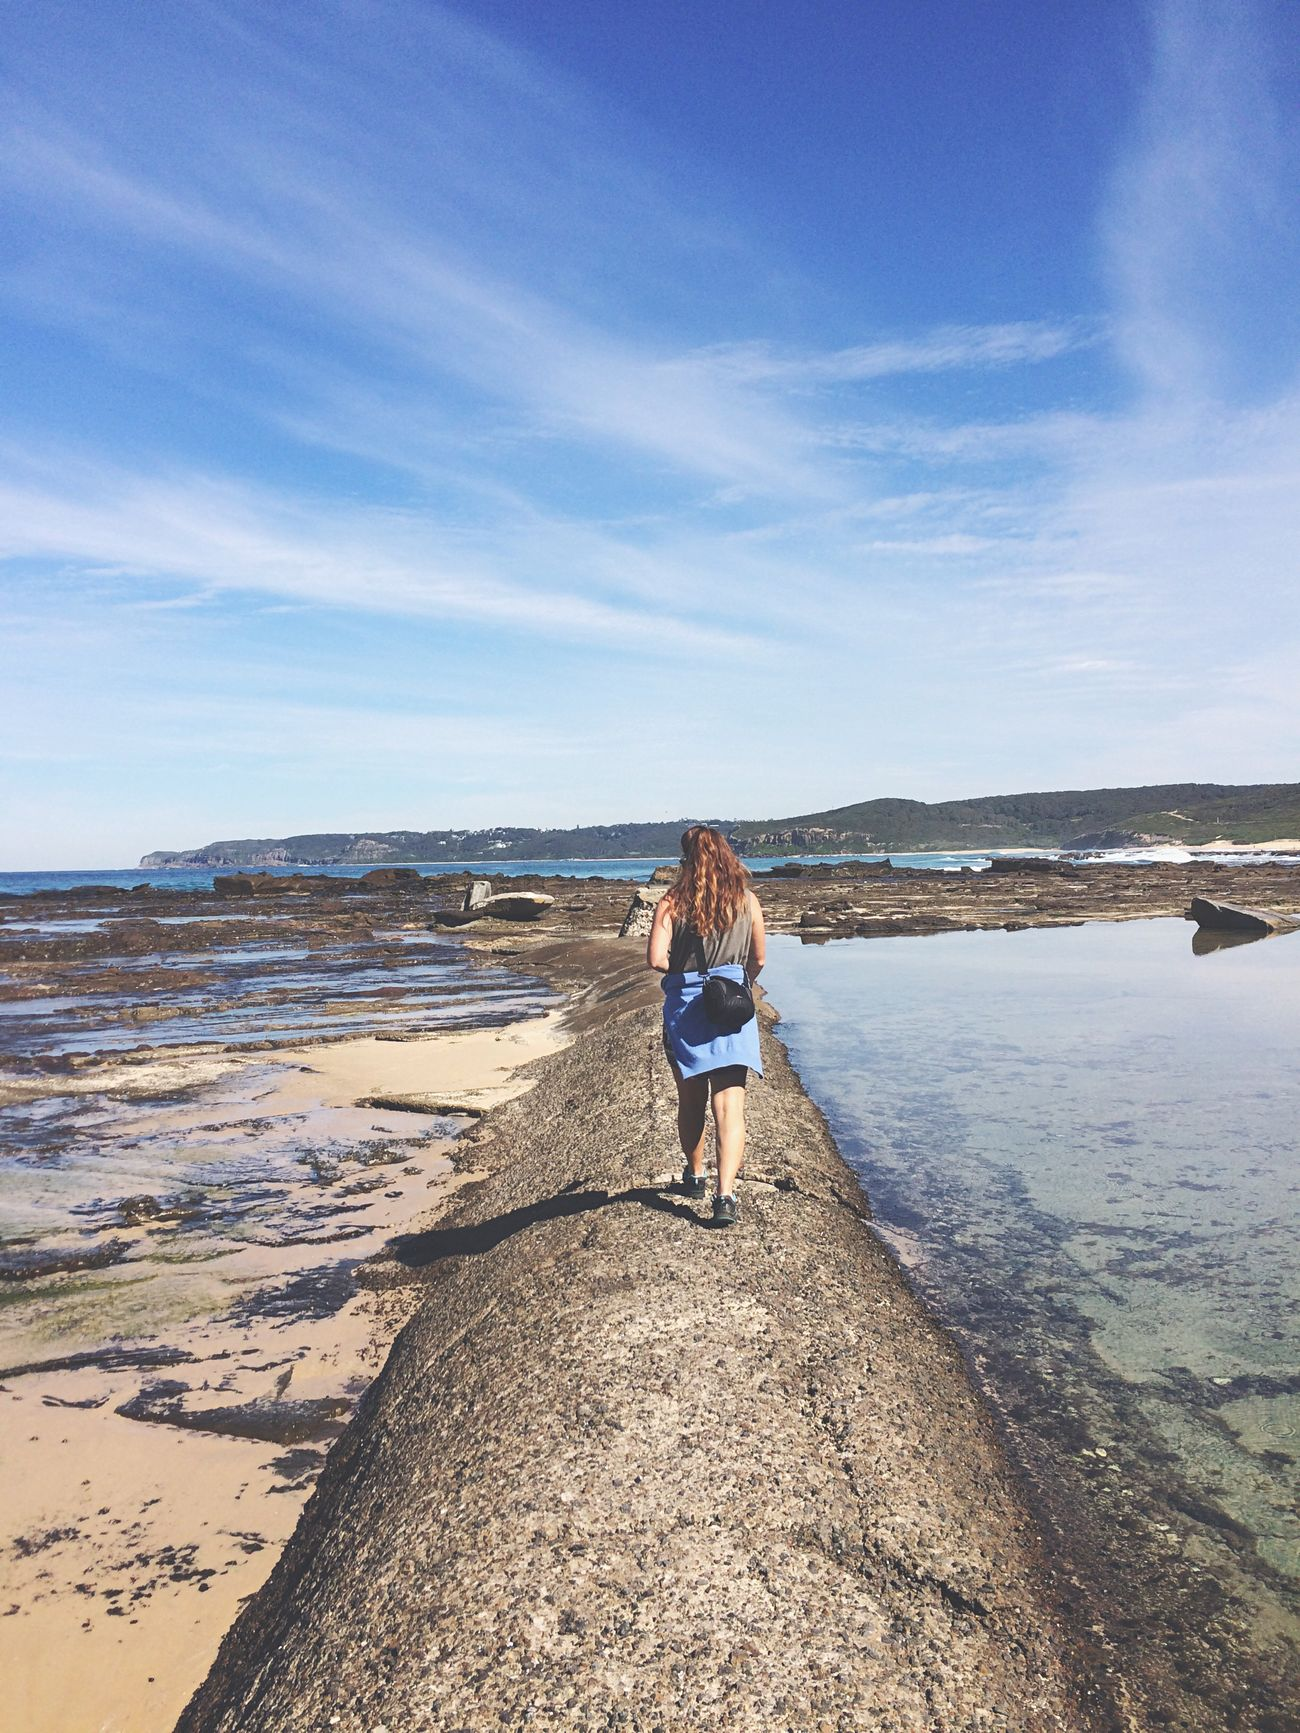 Finding New Frontiers thanks for letting me explore with you Em, have a wonderful Christmas 🎄 Rear View Sea Beach One Person Real People Sky Full Length Nature Scenics Lifestyles Water Beauty In Nature Day Leisure Activity Outdoors Tranquility Sand Wave Sister Traveler Backpacking Australia Newcastle Somewhere New